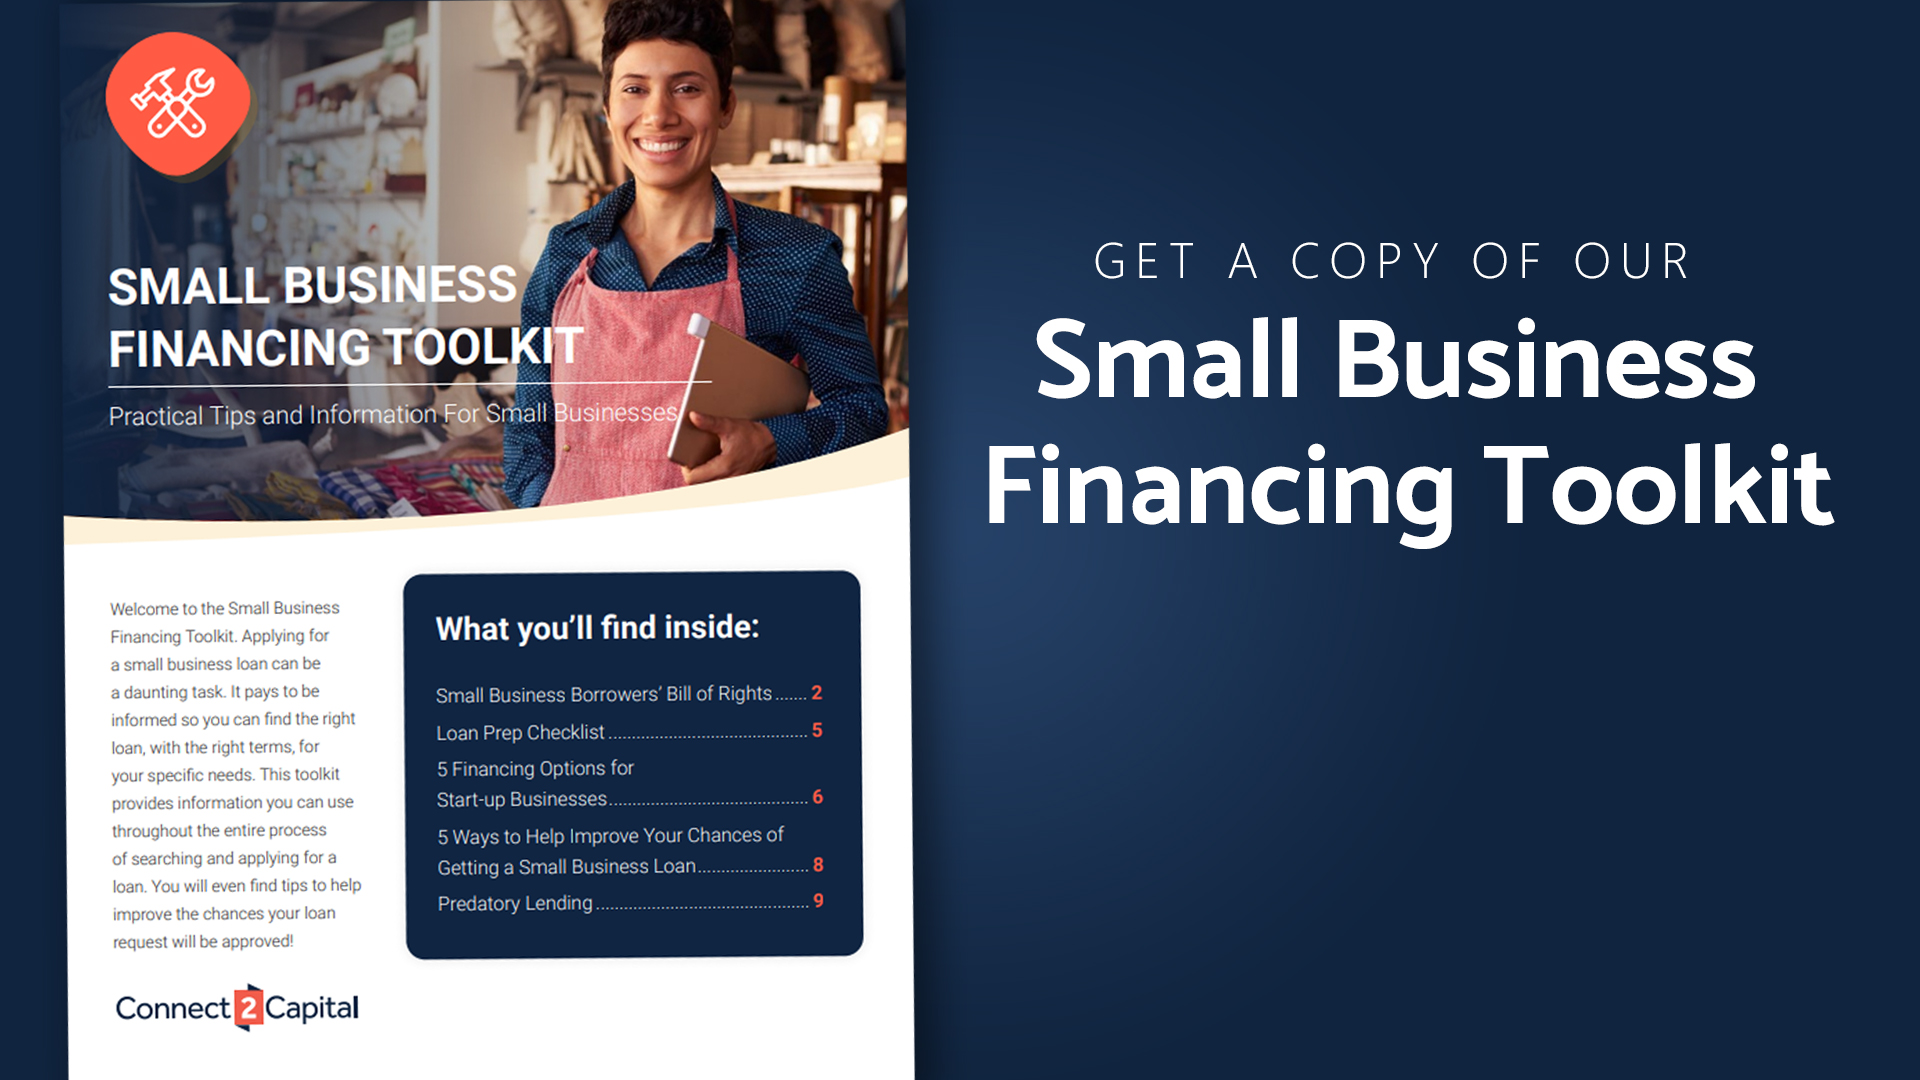 Get a copy of our small business financing toolkit